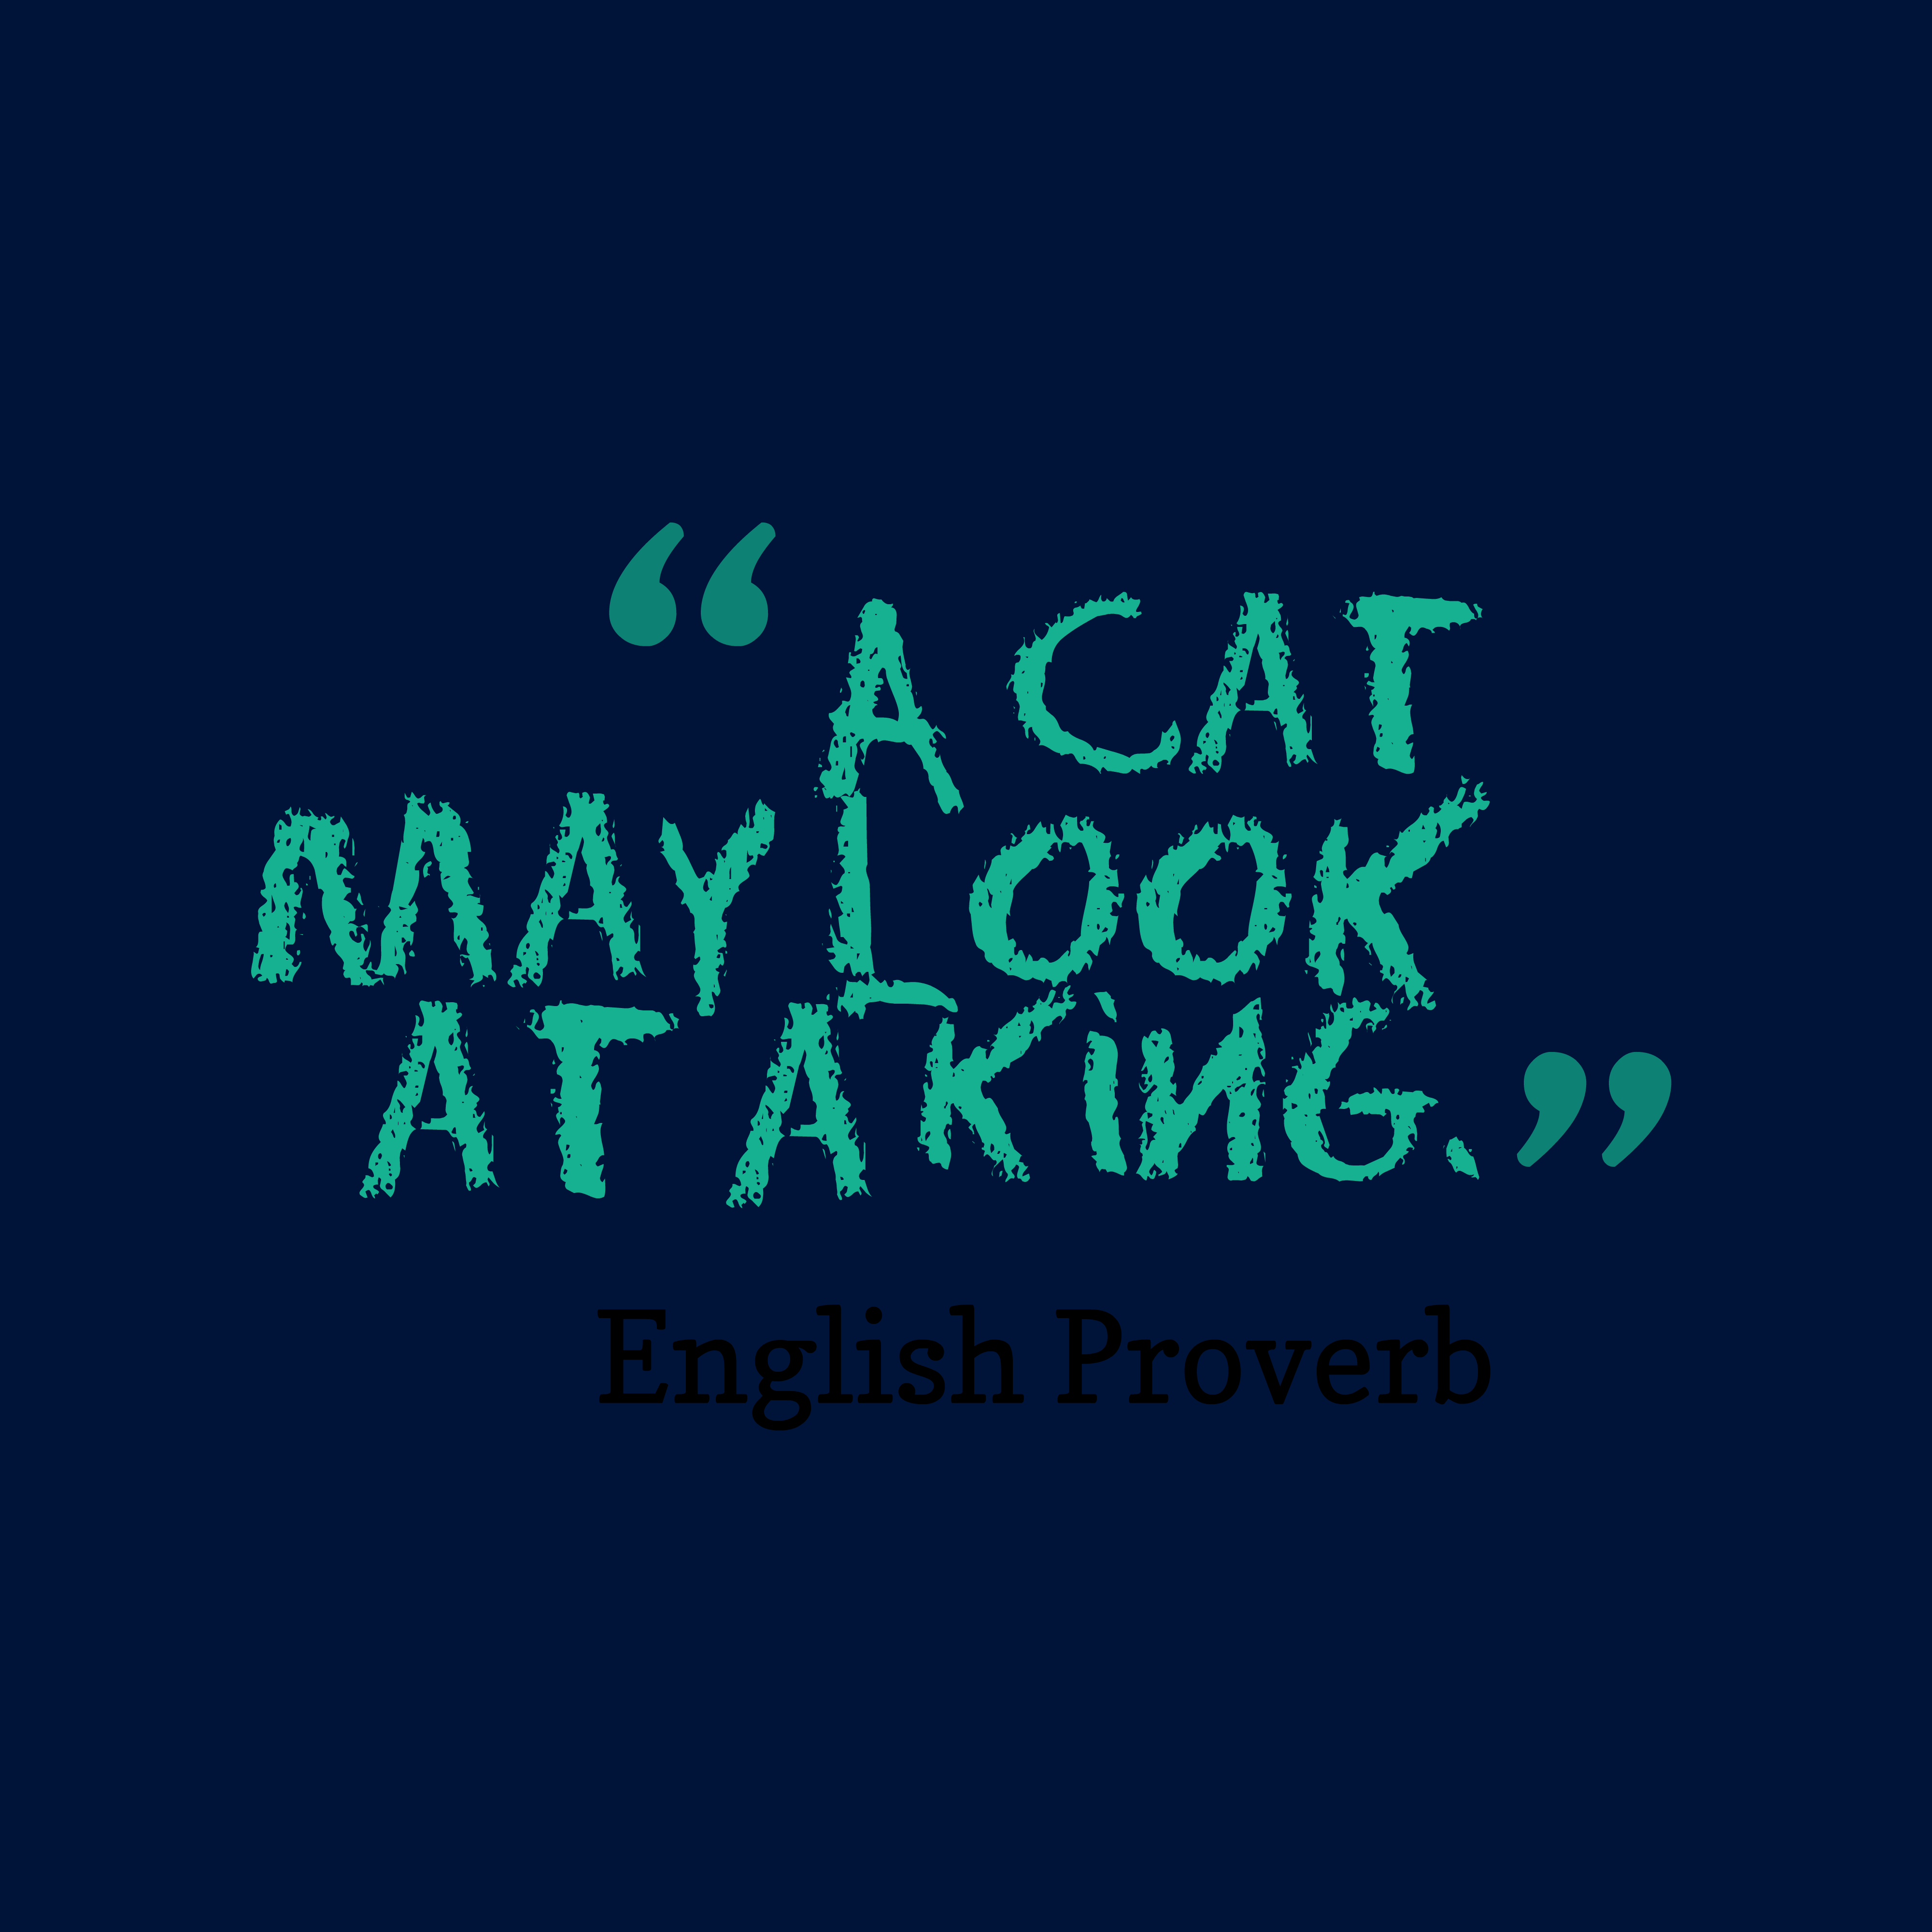 Quotes image of A cat may look at a king.